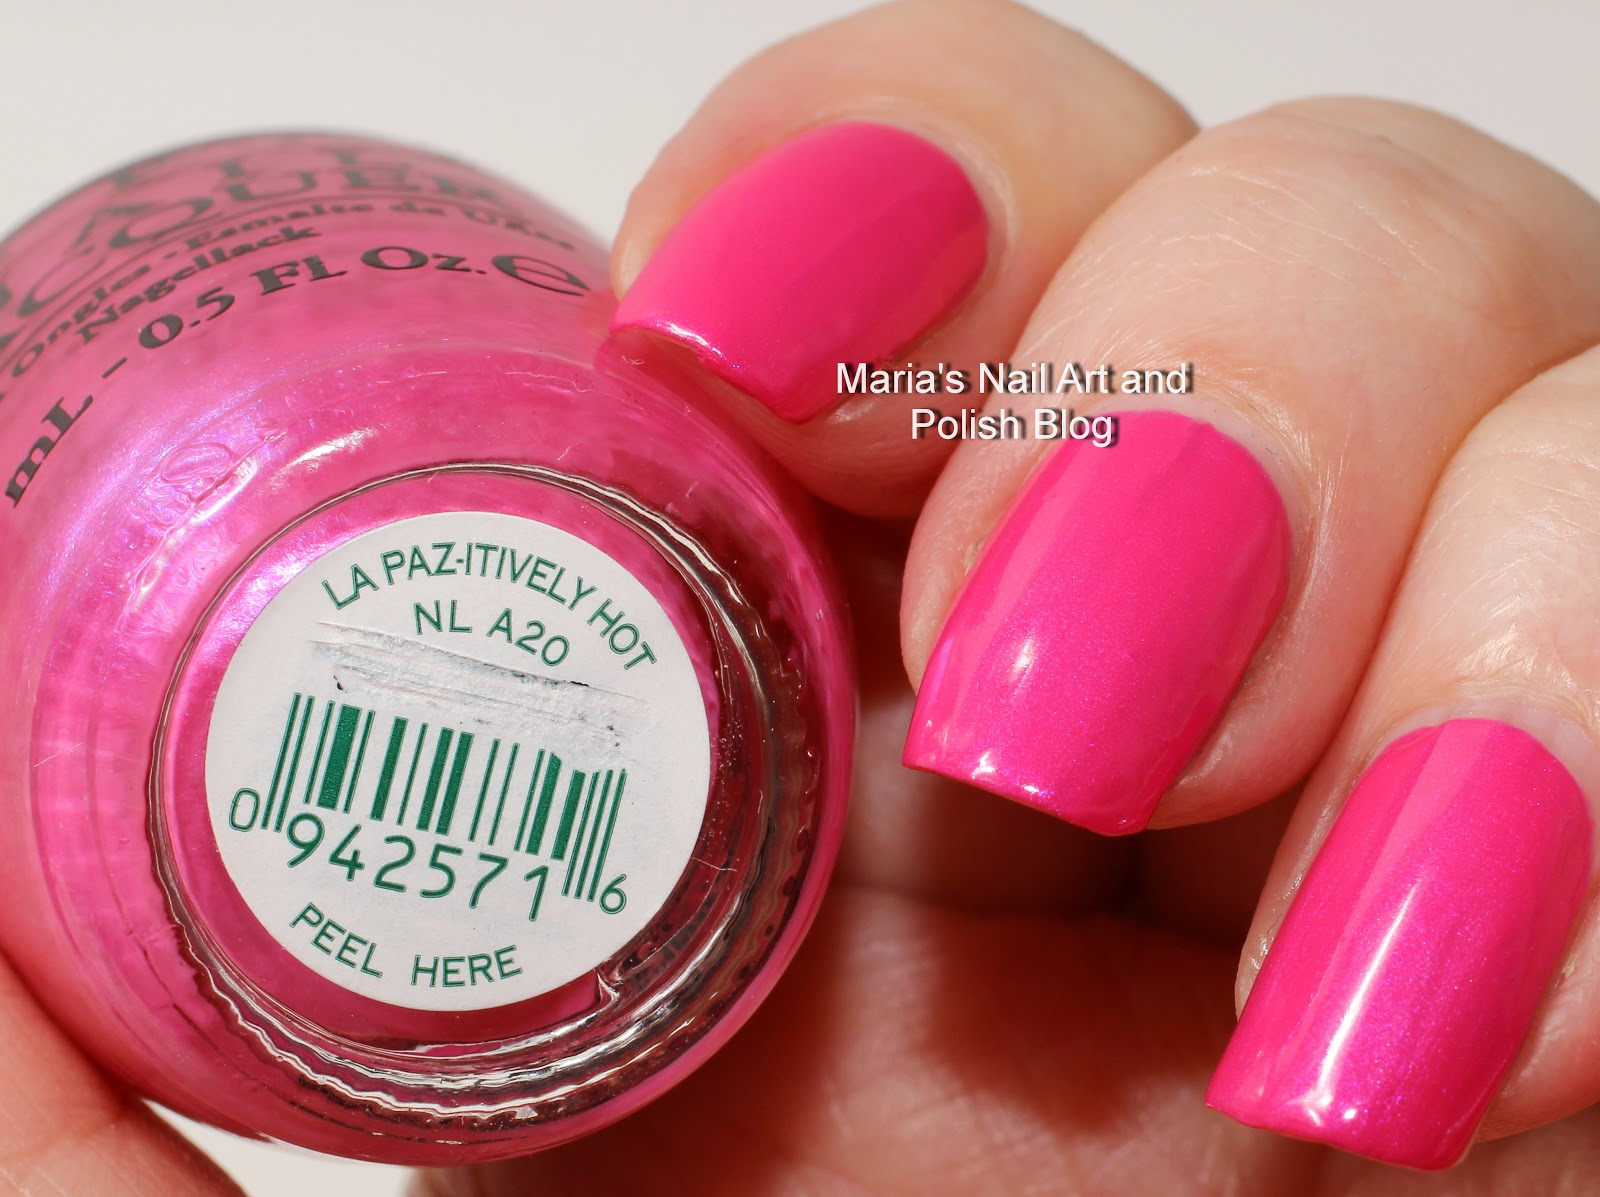 And Opi La Paz Itively Hot Matte